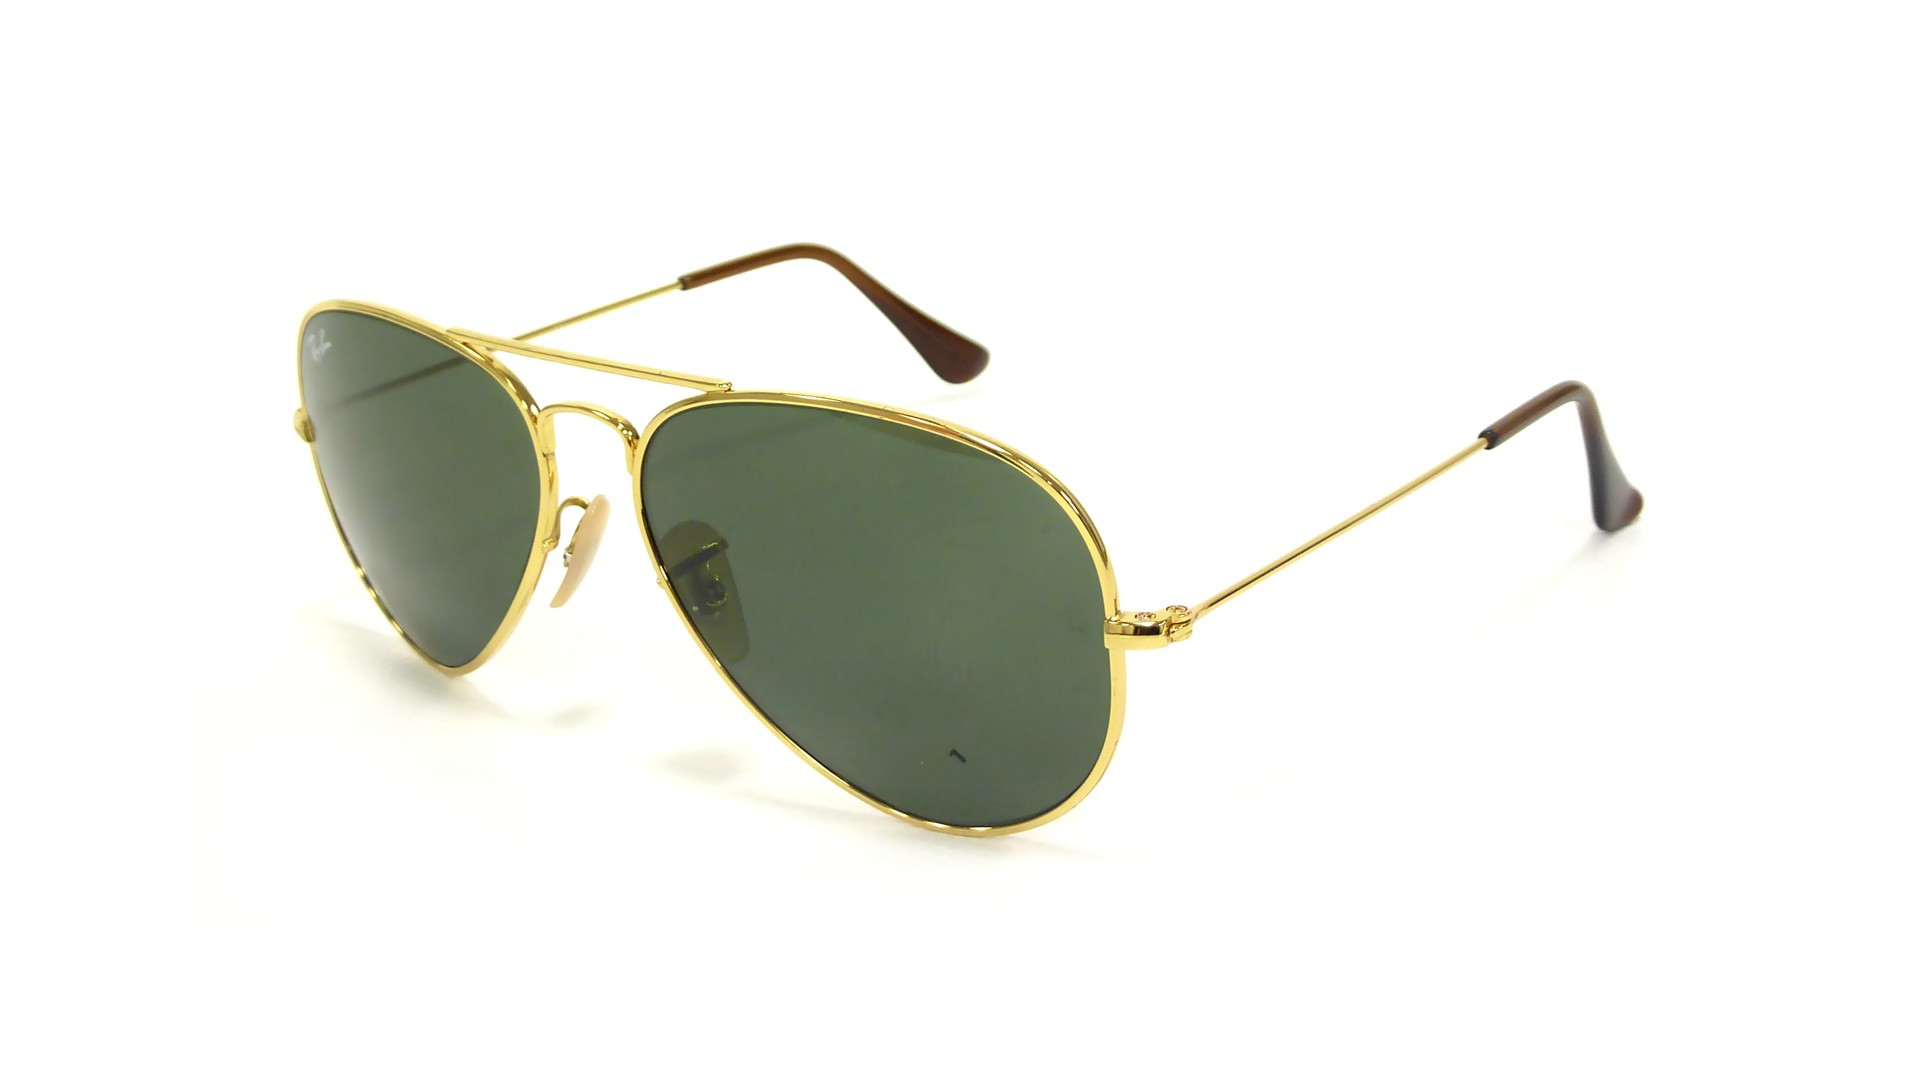 83d715e55226c ray ban rb 8041 aviator titaneium 001 golden medium 2075. gafas ray ban  mercadolibre argentina